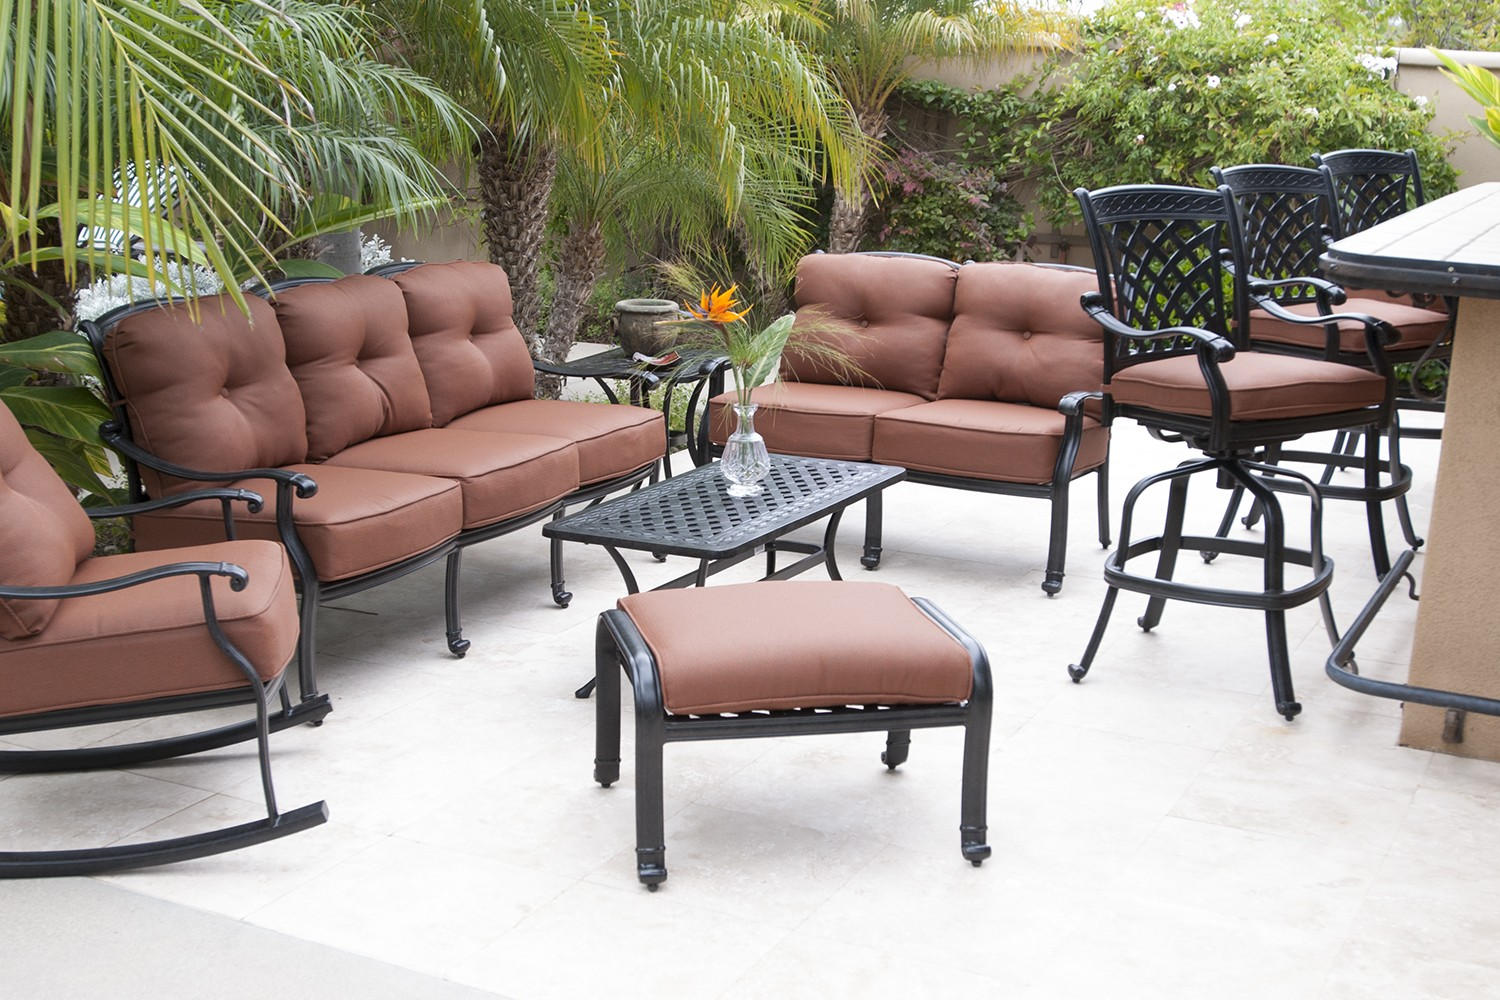 patio furniture for less photo - 1